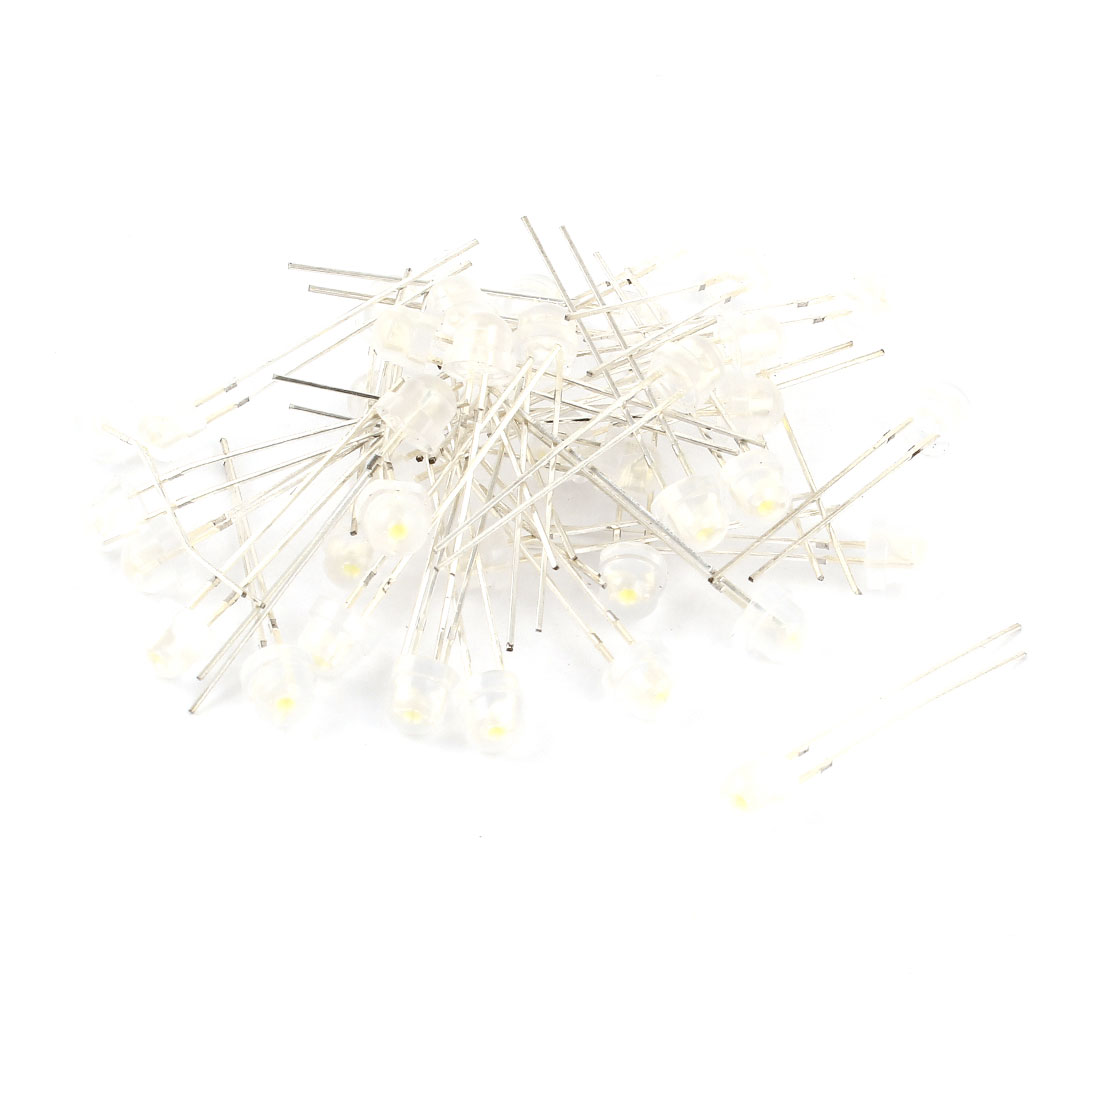 40 Pcs 5mmx5mm Round Head Mist Opaque White LED Light Emitting Diodes DC 2.5V-3.0V